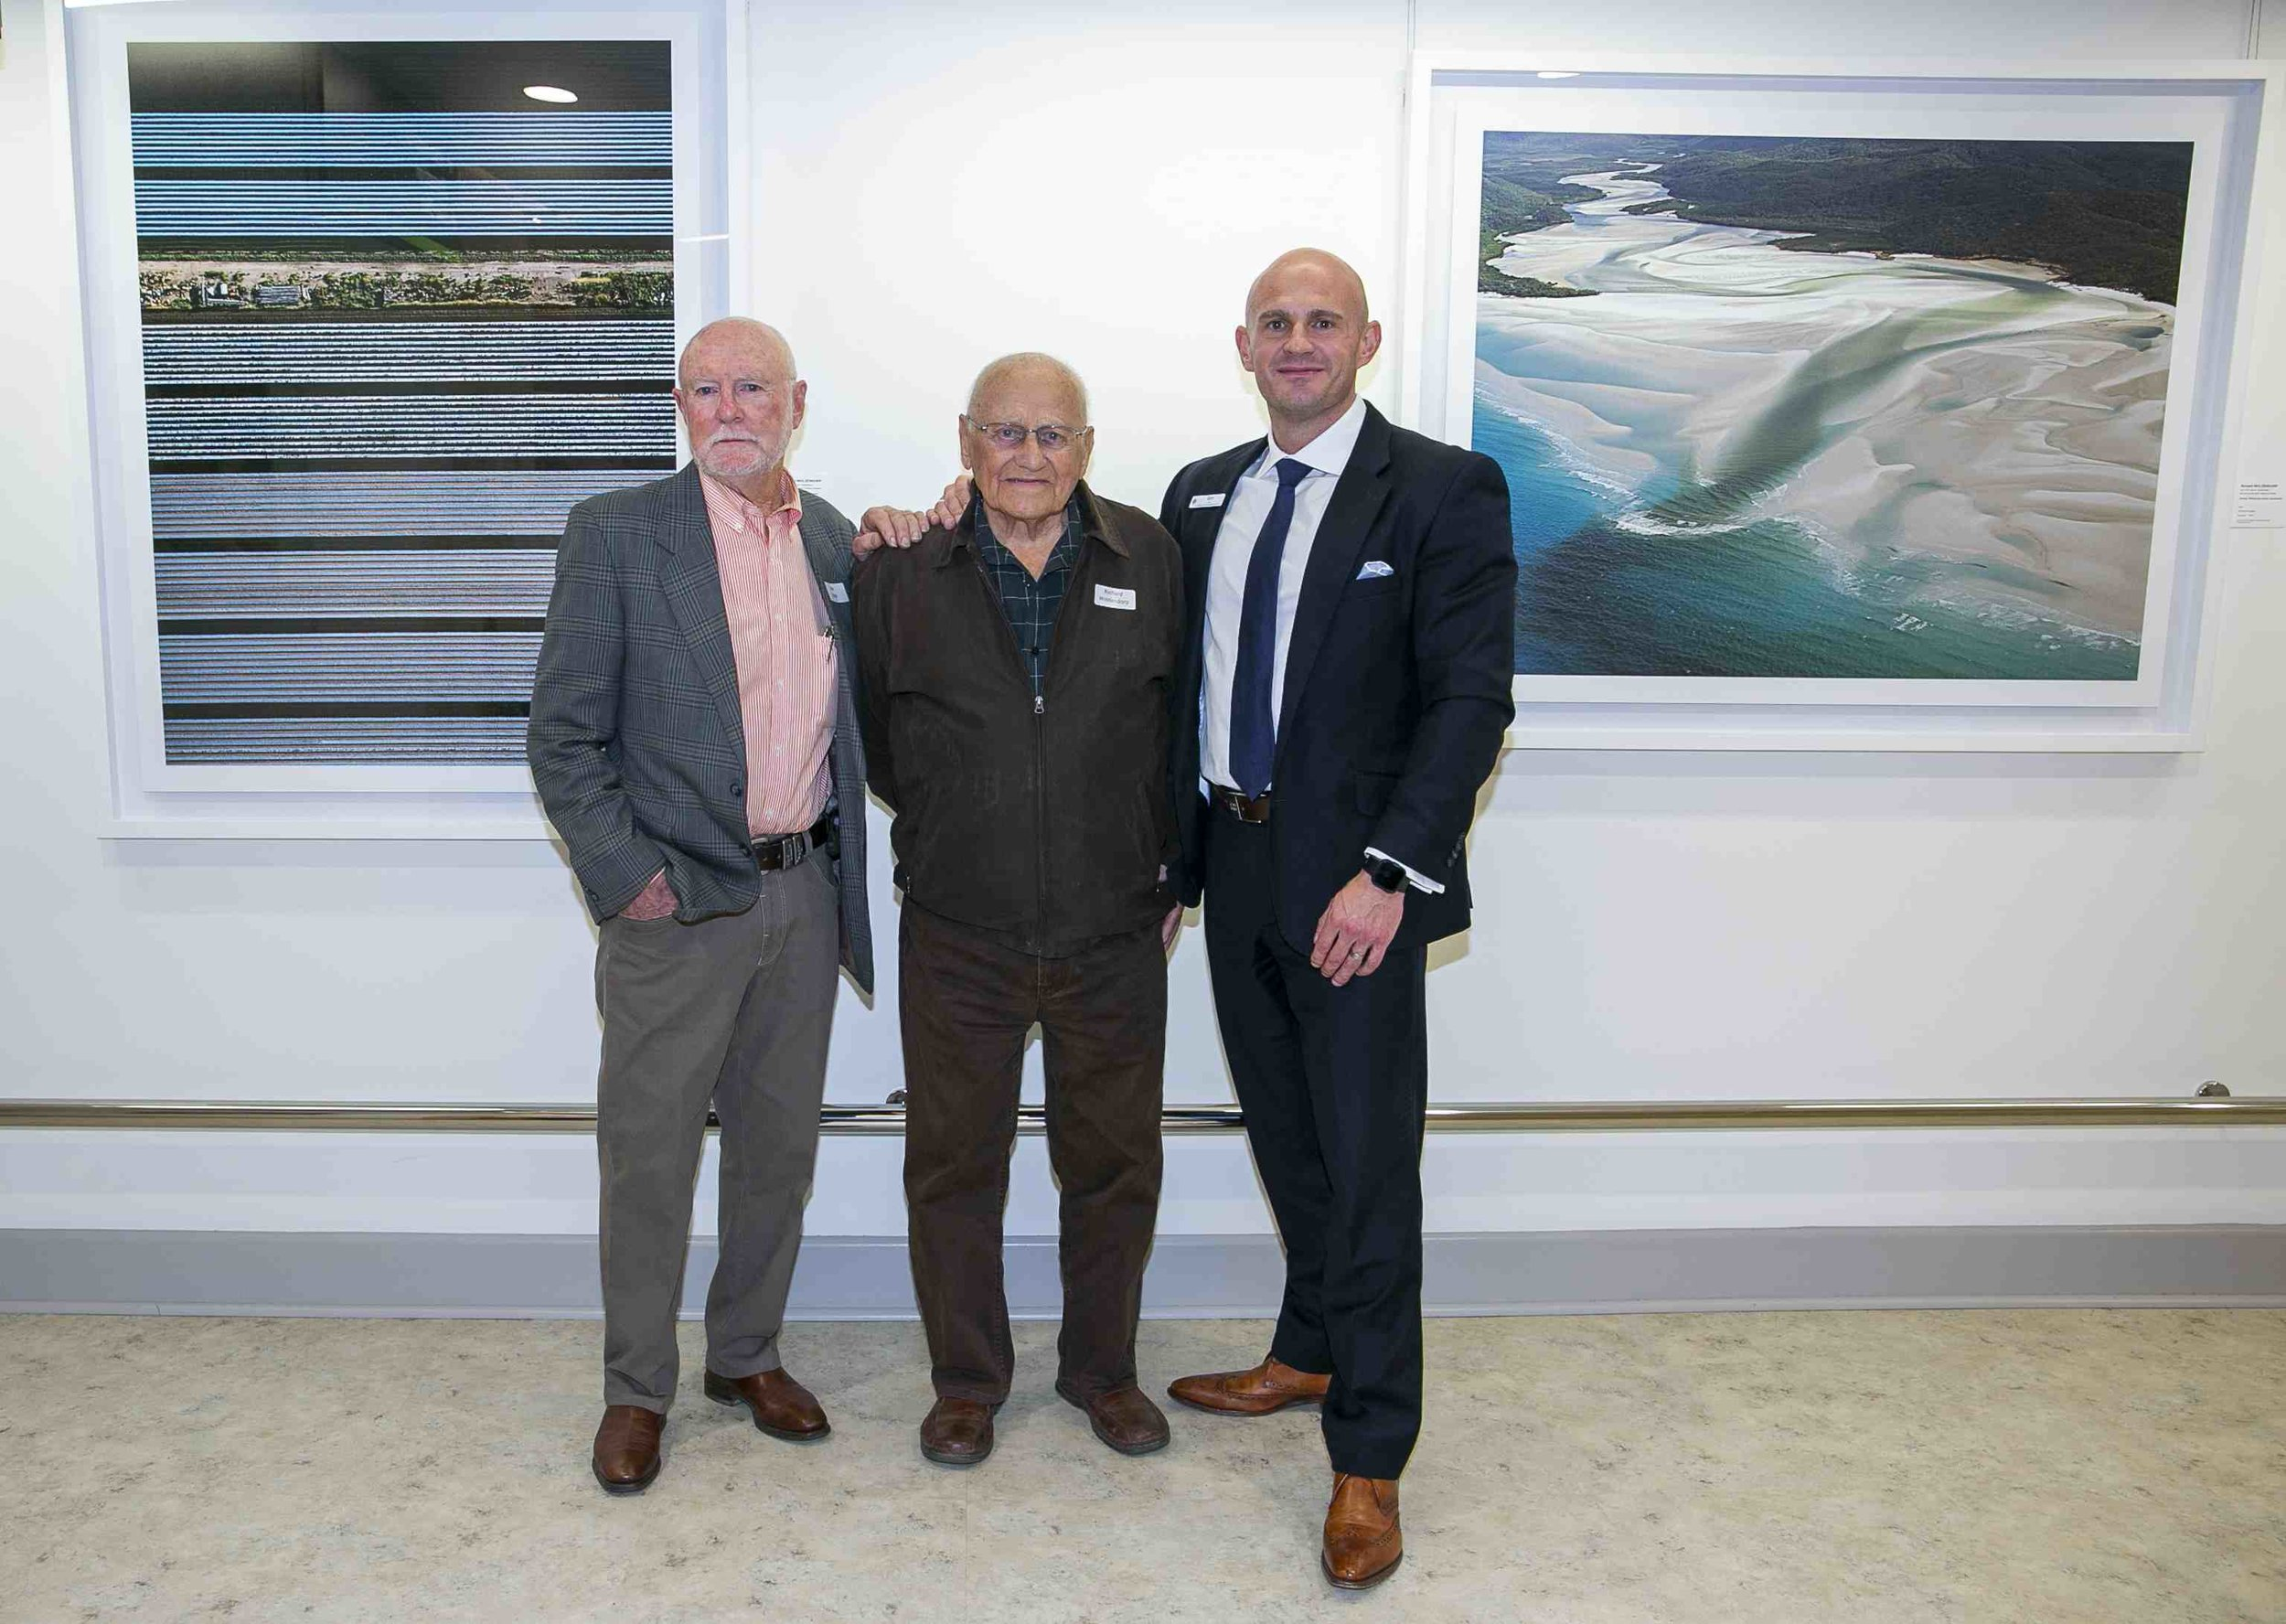 Richard Woldendorp at the 'Meet the Artist' opening with CEO of St John of God Hospital, Ben Edwards on his left, and Richard's long time friend and pilot, Jan Ende on his right.